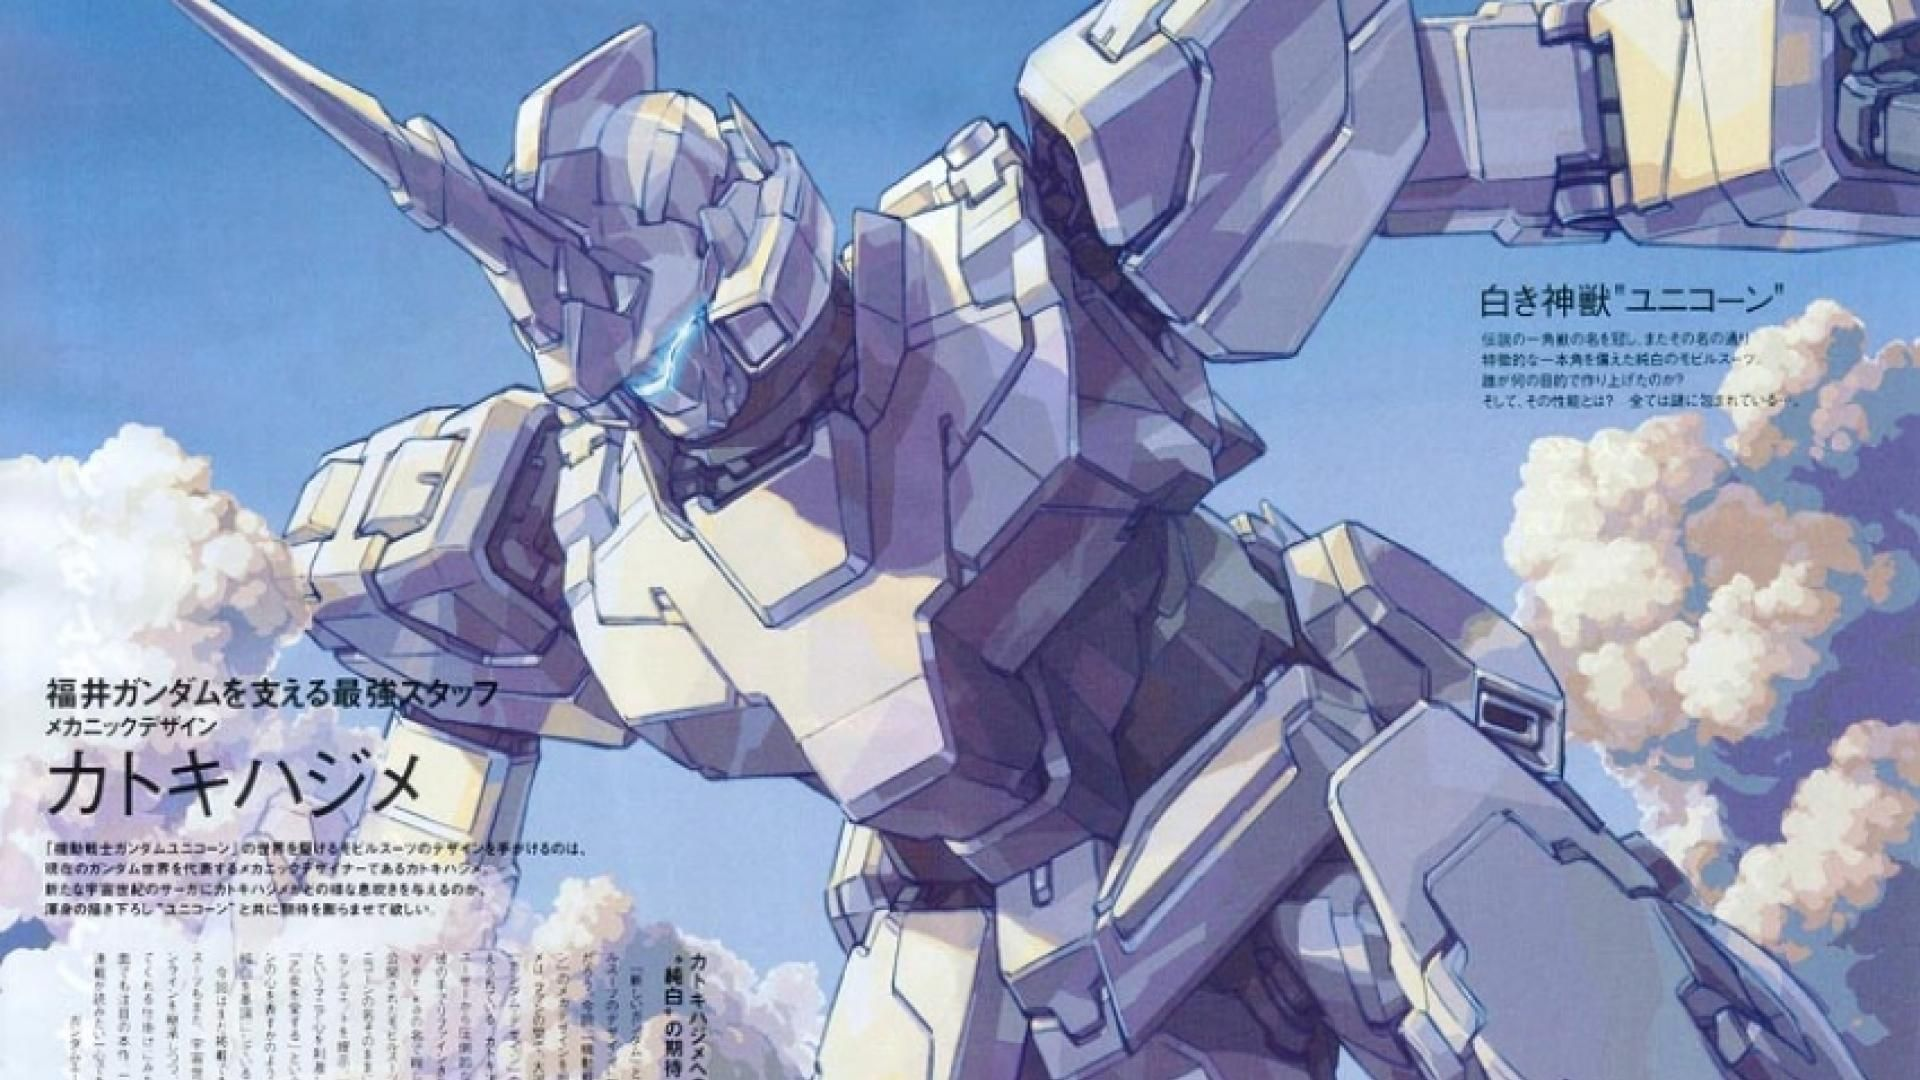 Gundam Unicorn Wallpapers For Android Bozhuwallpaper Unicorn Wallpaper Unicorn Gundam Gundam Wallpapers